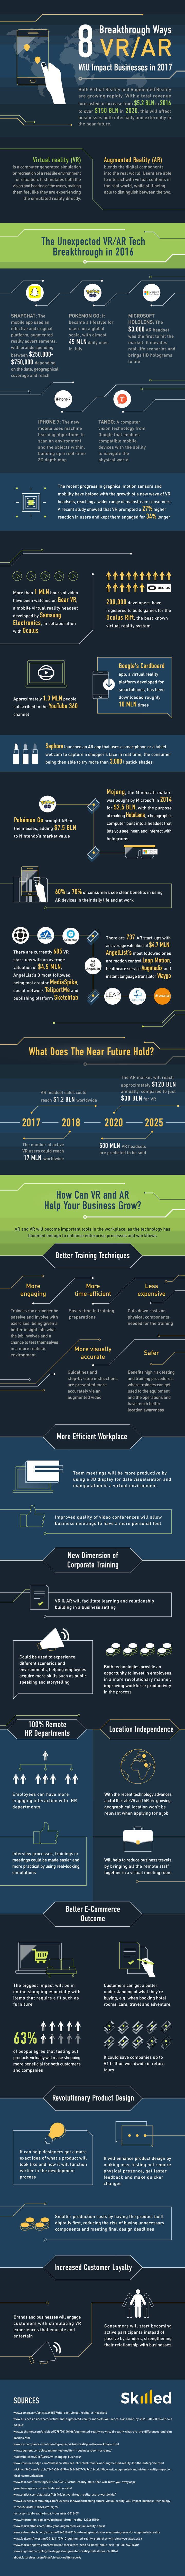 How VR AR Will Impact Business infographic.jpg